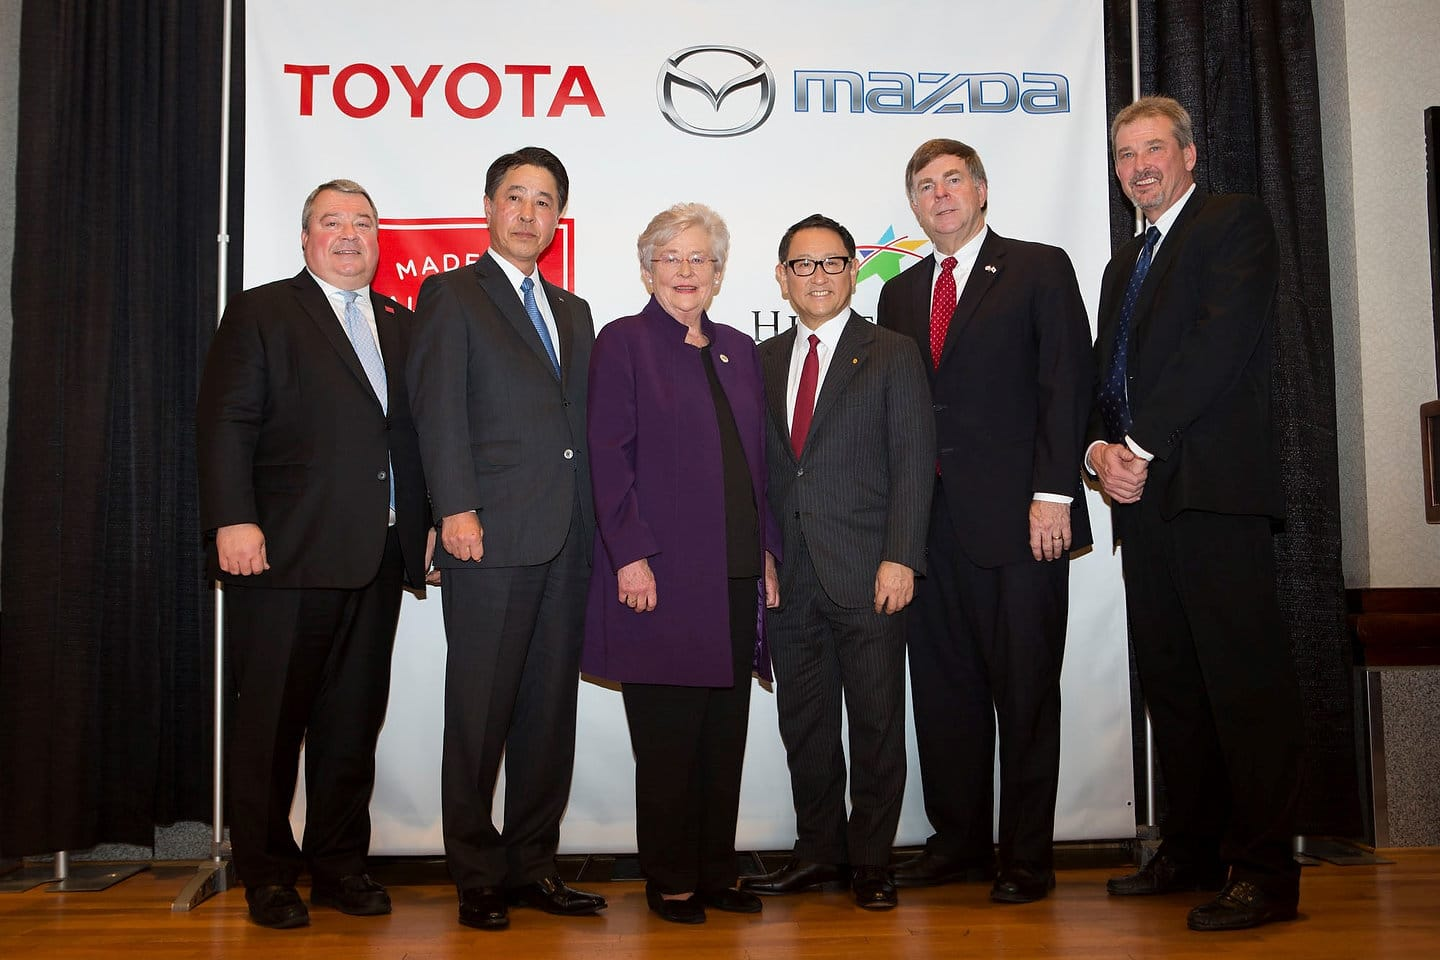 Left to right: Secretary Greg Canfield, Mazda Motor Corporation President and Chief Executive Officer Masamichi Kogai, Alabama Govornor Kay Ivey, Toyota Motor Corporation President Akio Toyoda, Huntsville Mayor Tommy Battle, Commission Chairman Mark Yarbrough